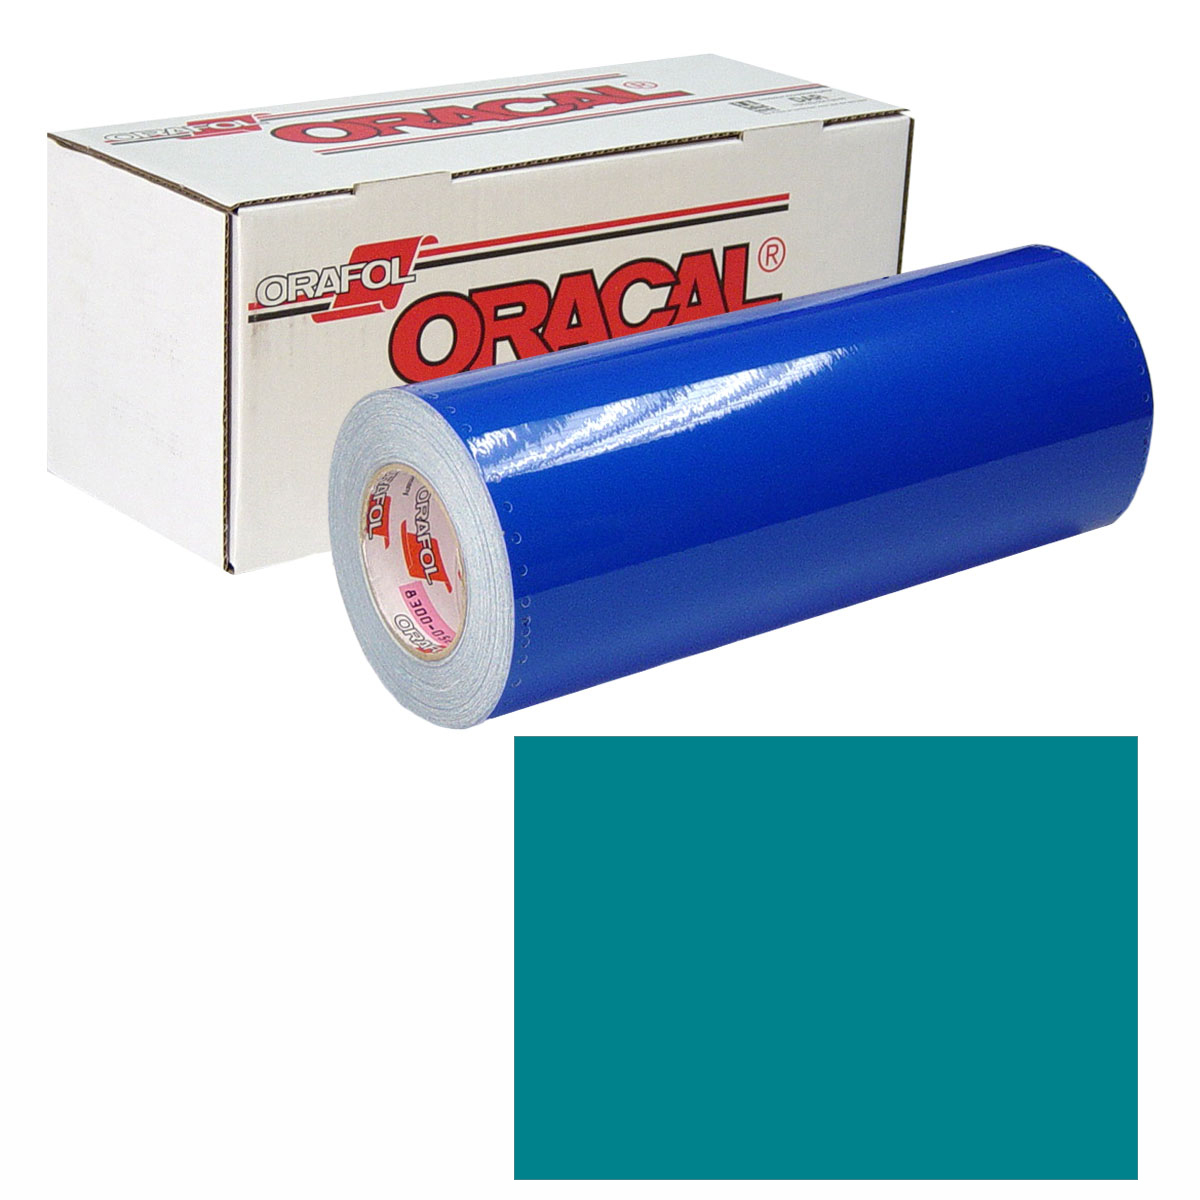 ORACAL 631 Unp 48in X 10yd 066 Turquoise Blue